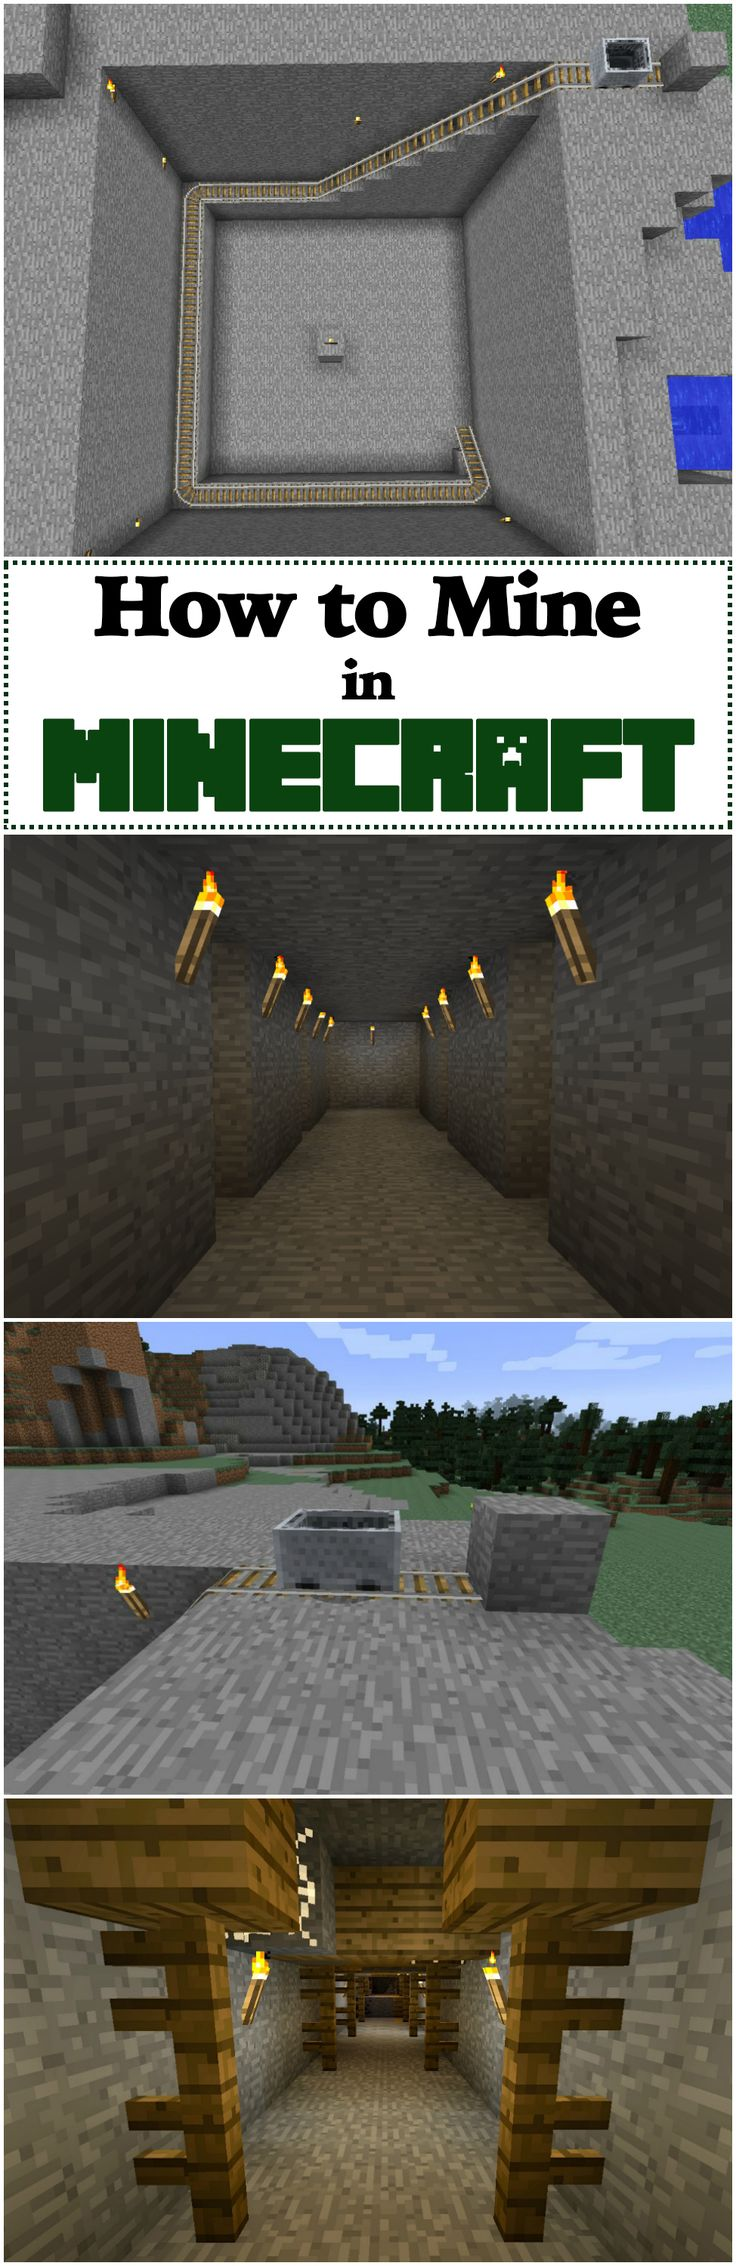 How to Mine in Minecraft | Learn about the different kinds of mines you can use and how to make all the tools you need to be an experienced miner in Minecraft.